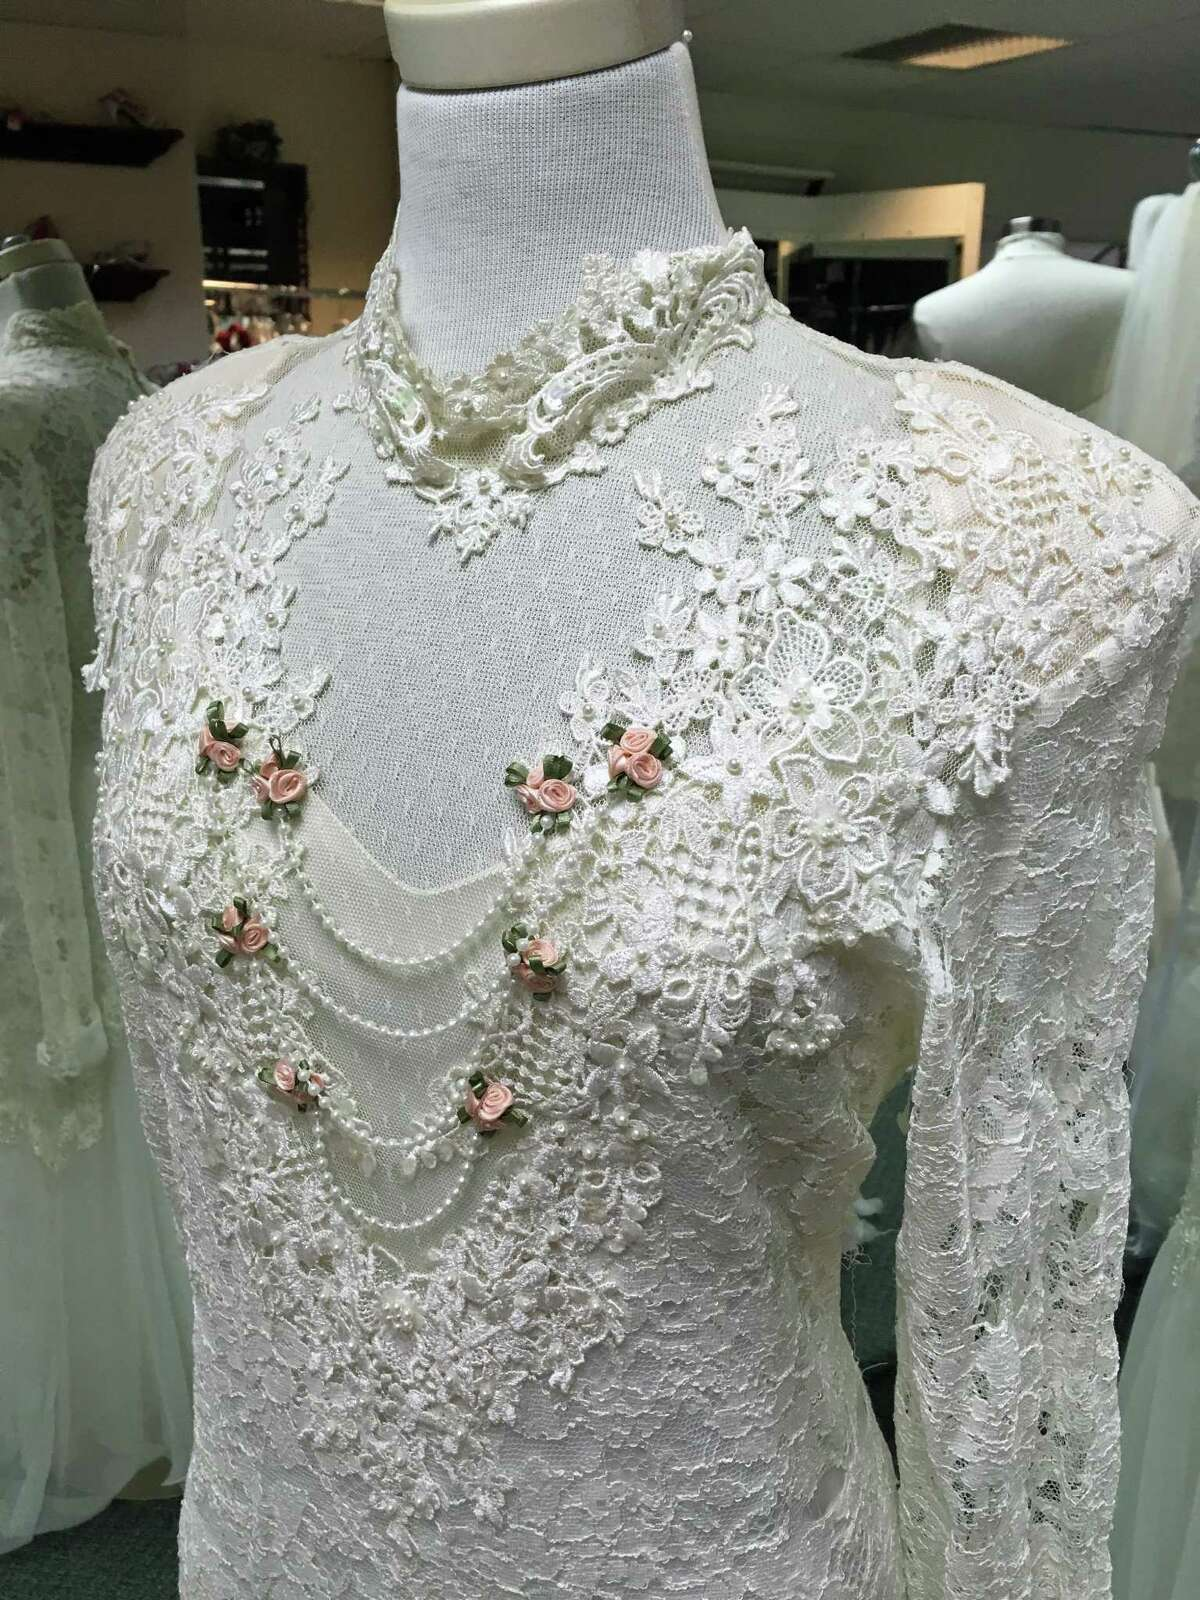 This wedding dress was among the first gowns Gail Furniss offered when she opened Occasions Bridal in Bethel 30 years ago.